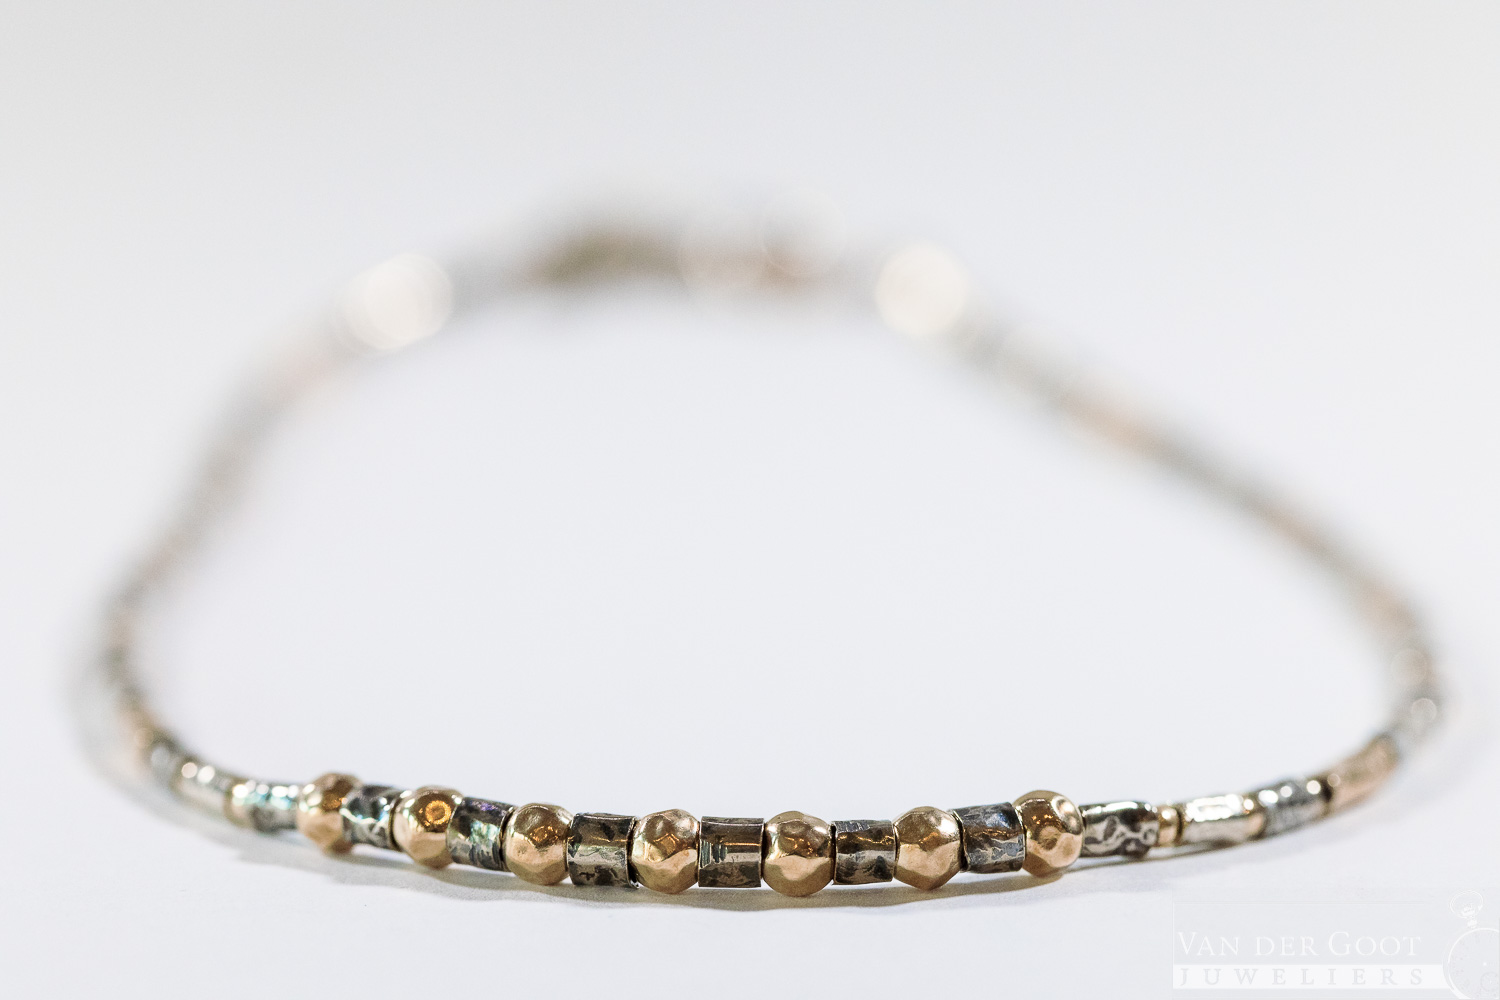 No. 220 Jeh Collier buisjes zilver oxy + Goldfilled  44 - 47 cm  €199,-